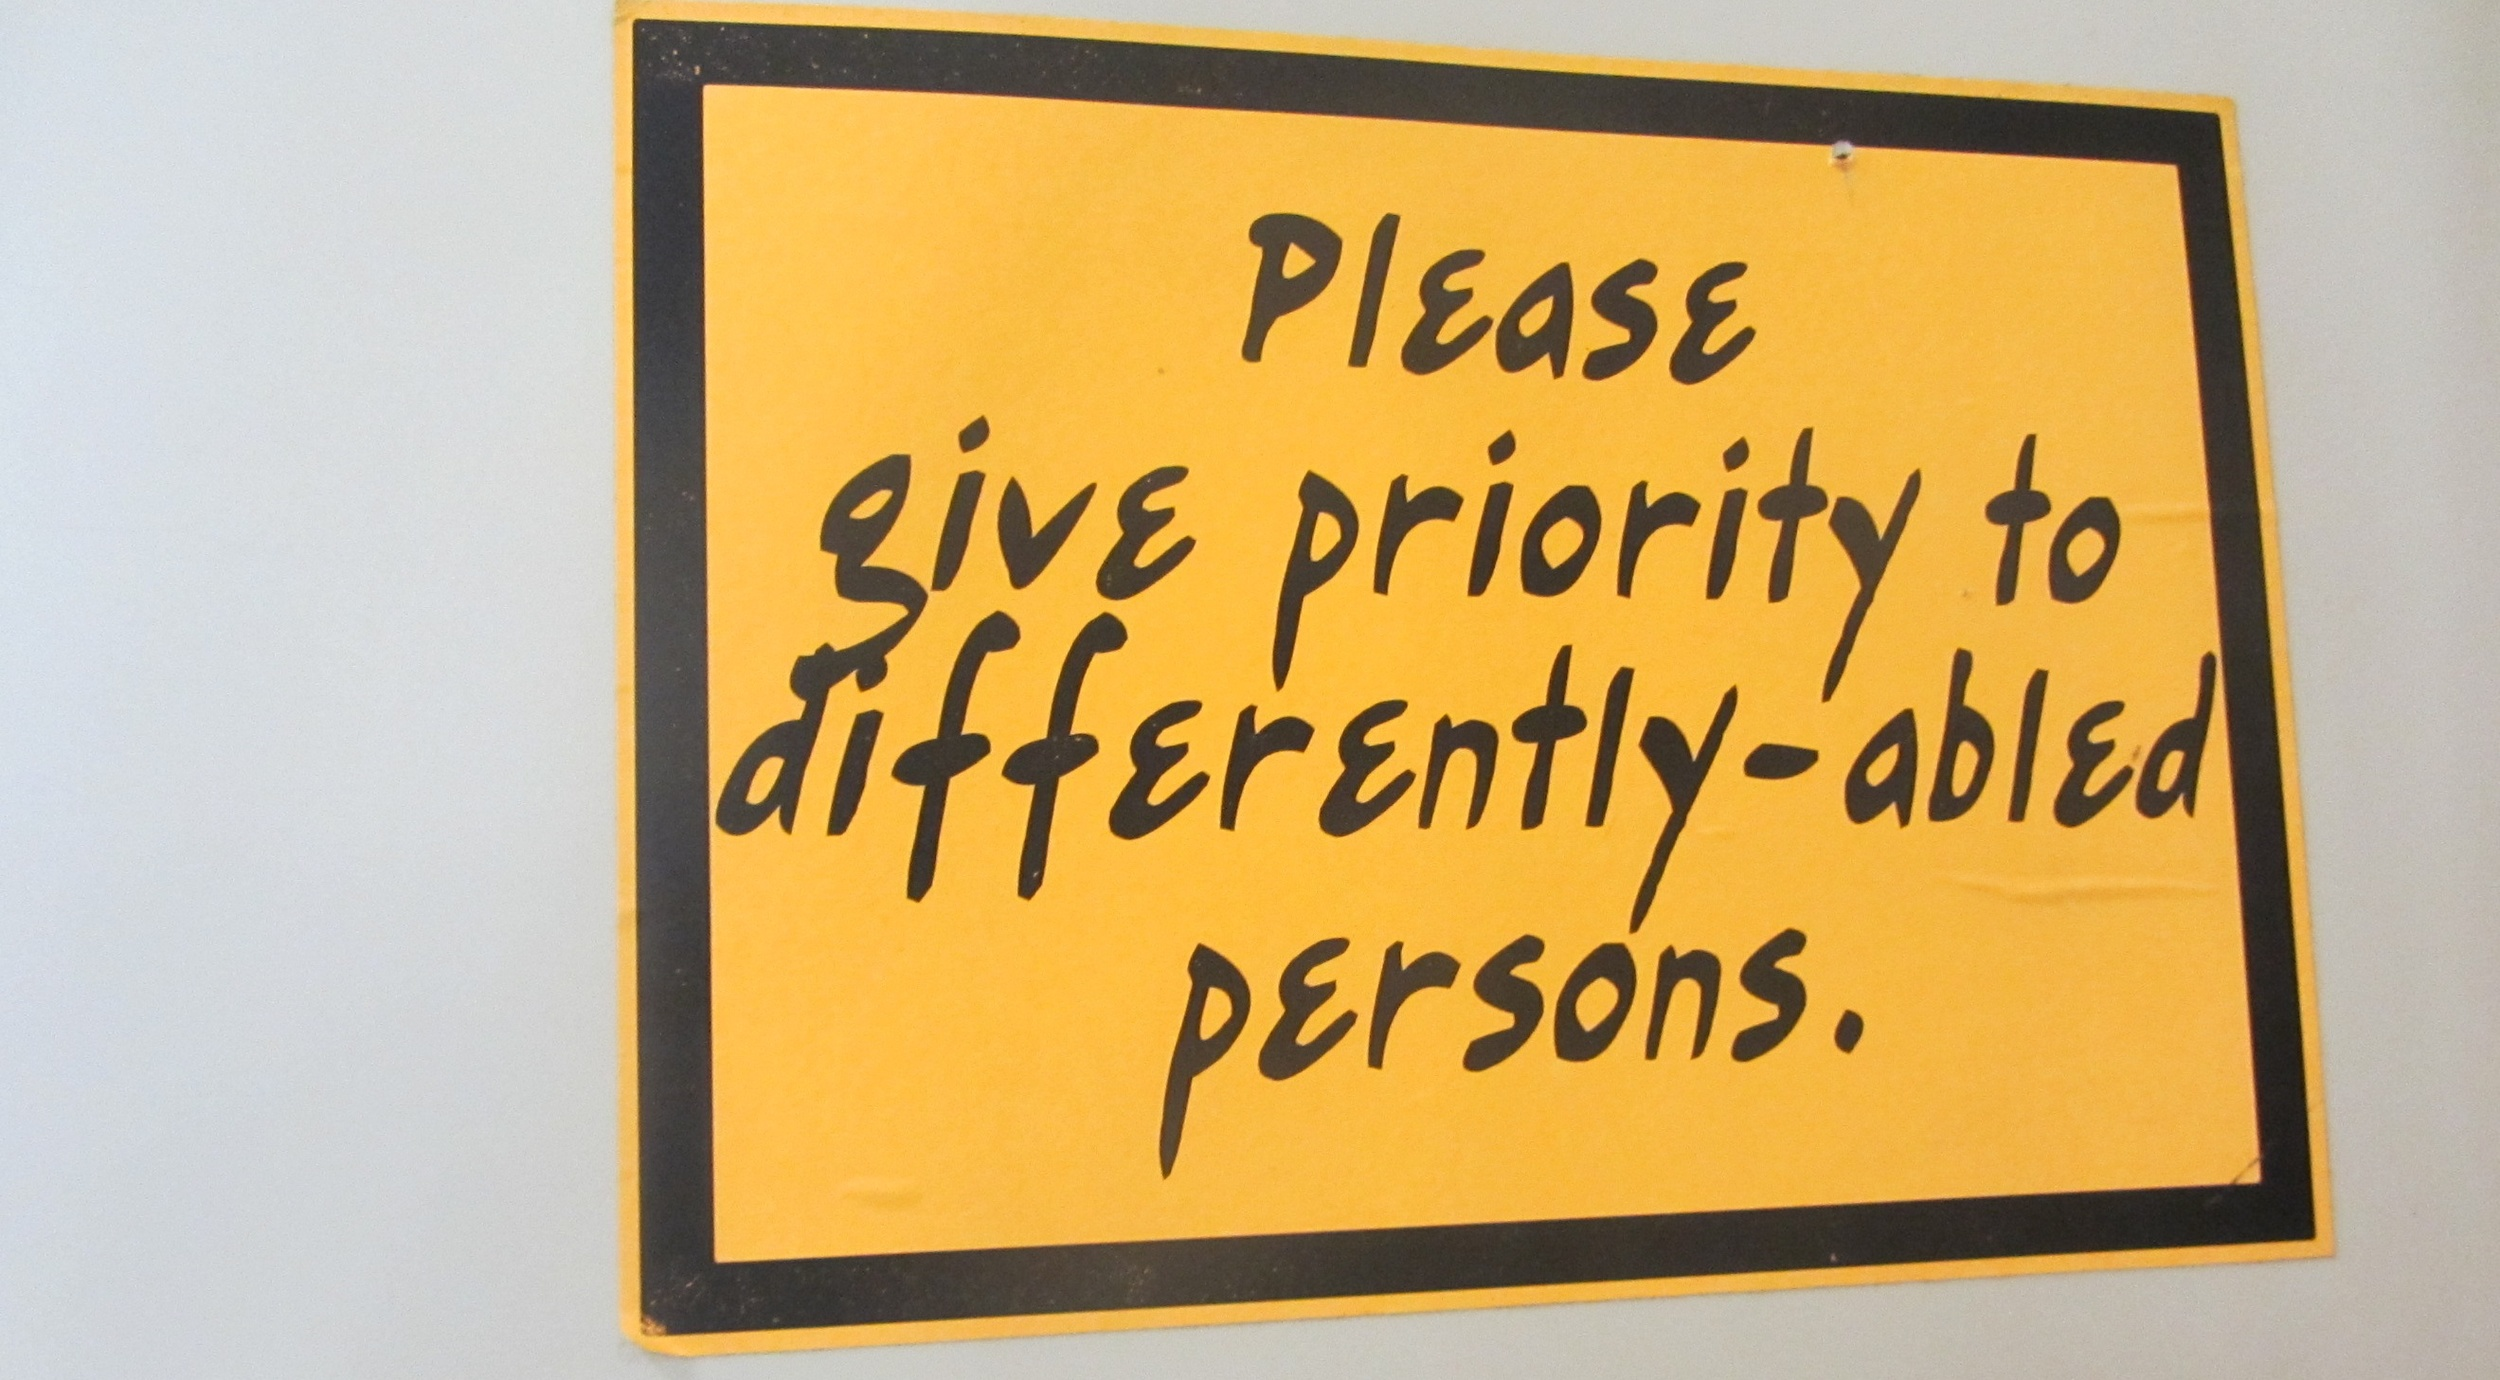 """Manners are important as this restroom sign asks: """"Please give priority for differently-abled persons""""  (Photo by Lisa Suguitan Melnick)"""